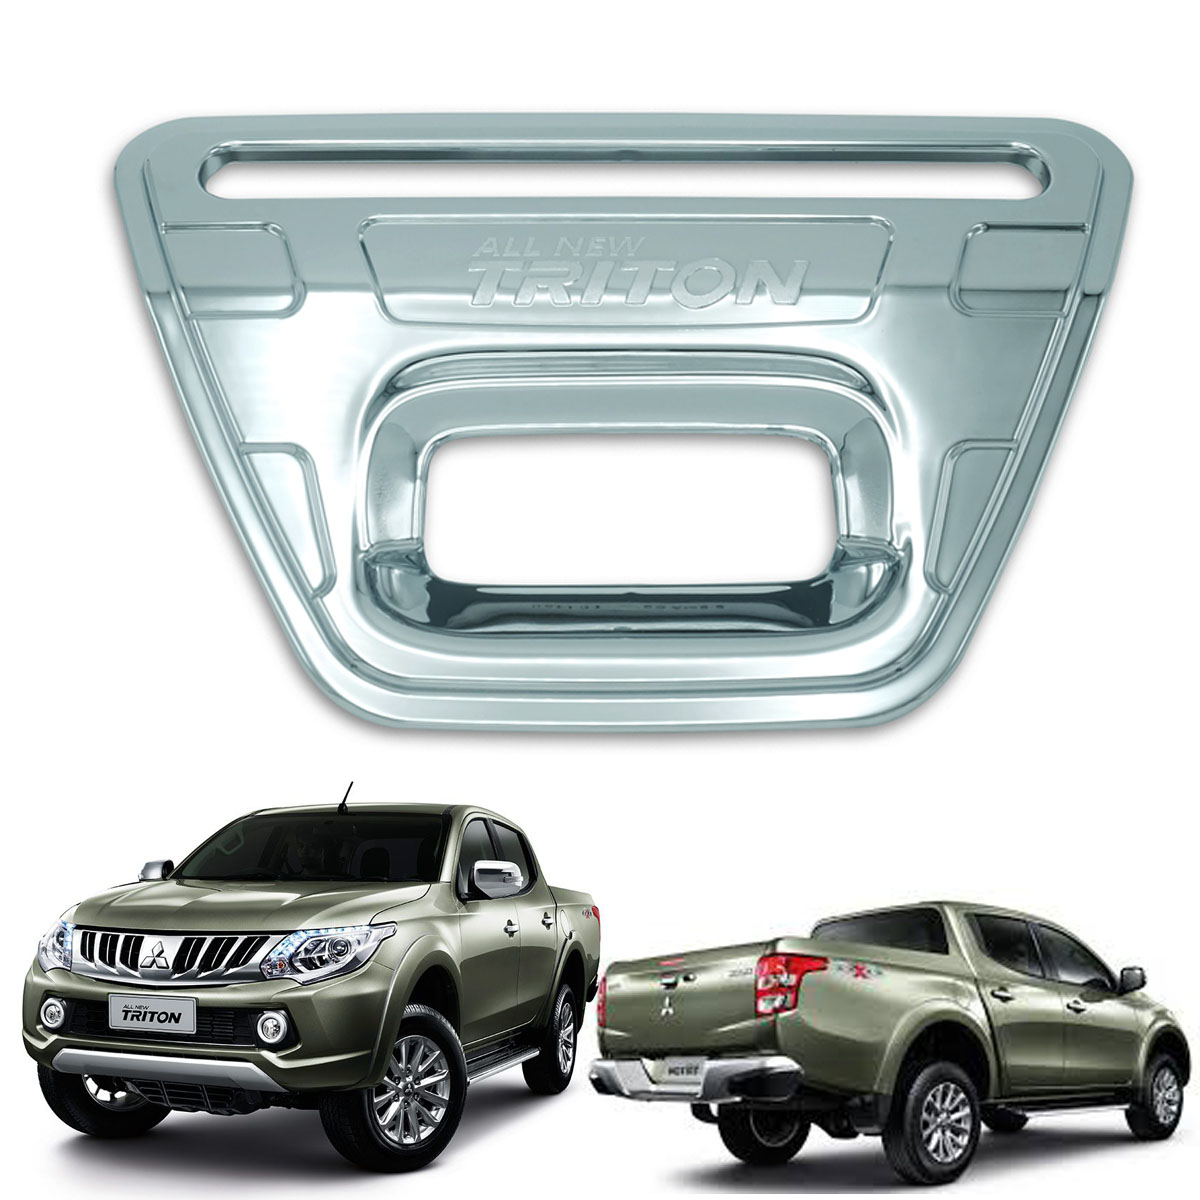 CHROME 4 DOOR HANDLE HAND COVER TRIM FOR MITSUBISHI TRITON 4 DOOR CAB 2015 TRUCK